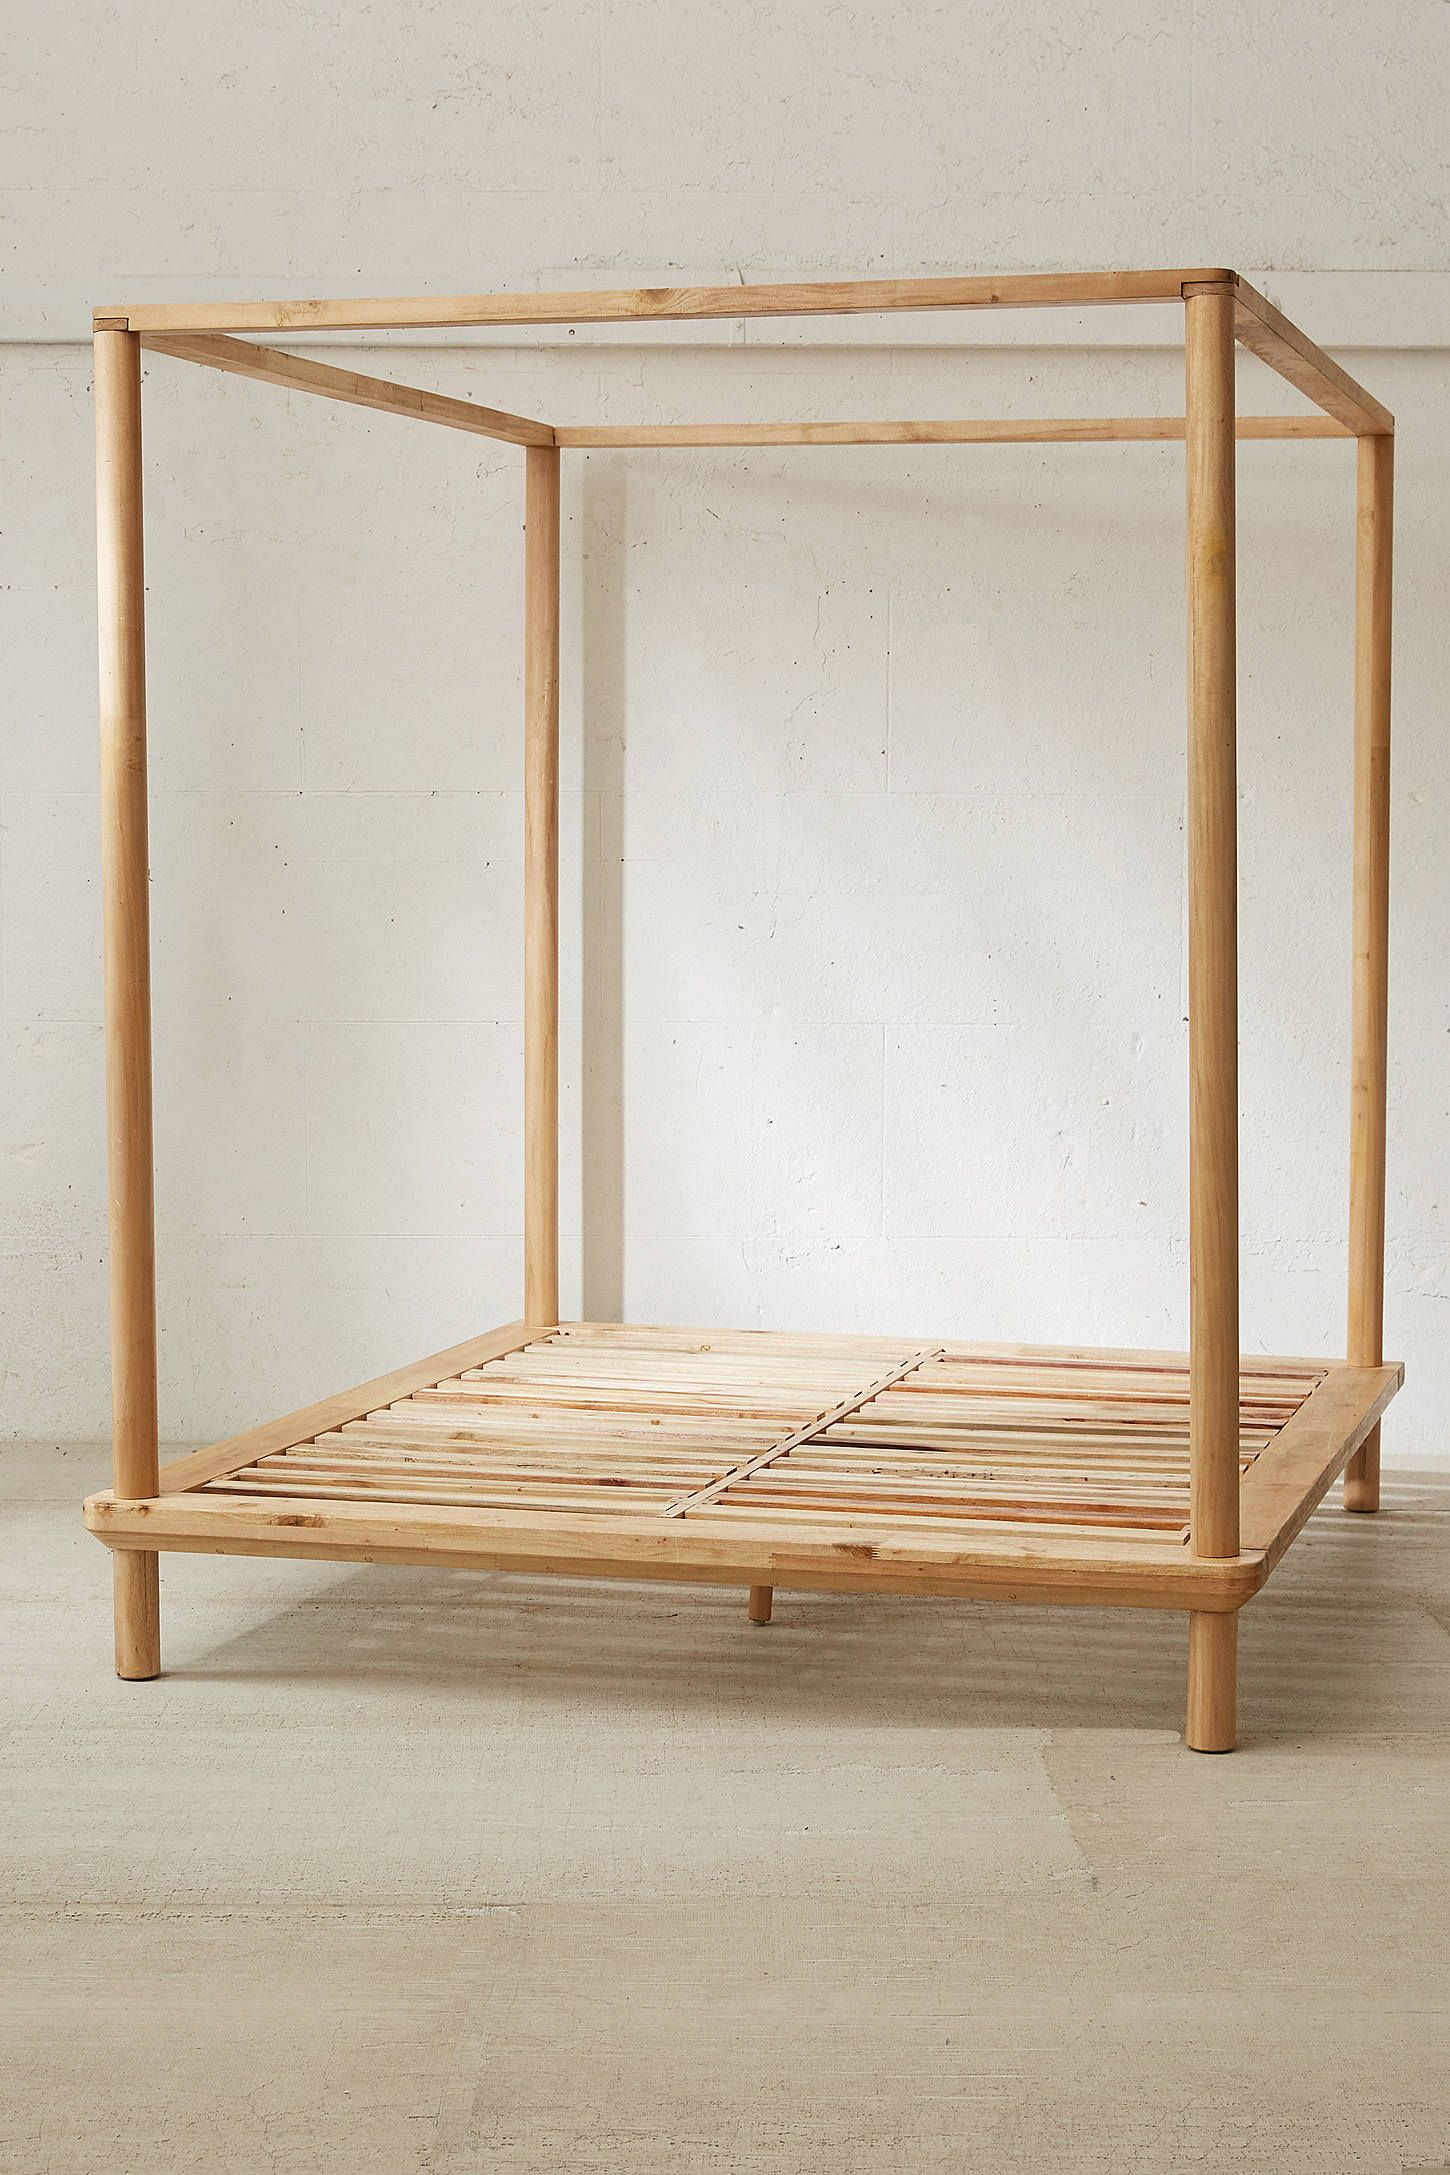 Wood Canopy Bed eva wooden canopy bed   wooden canopy, canopy and diy furniture